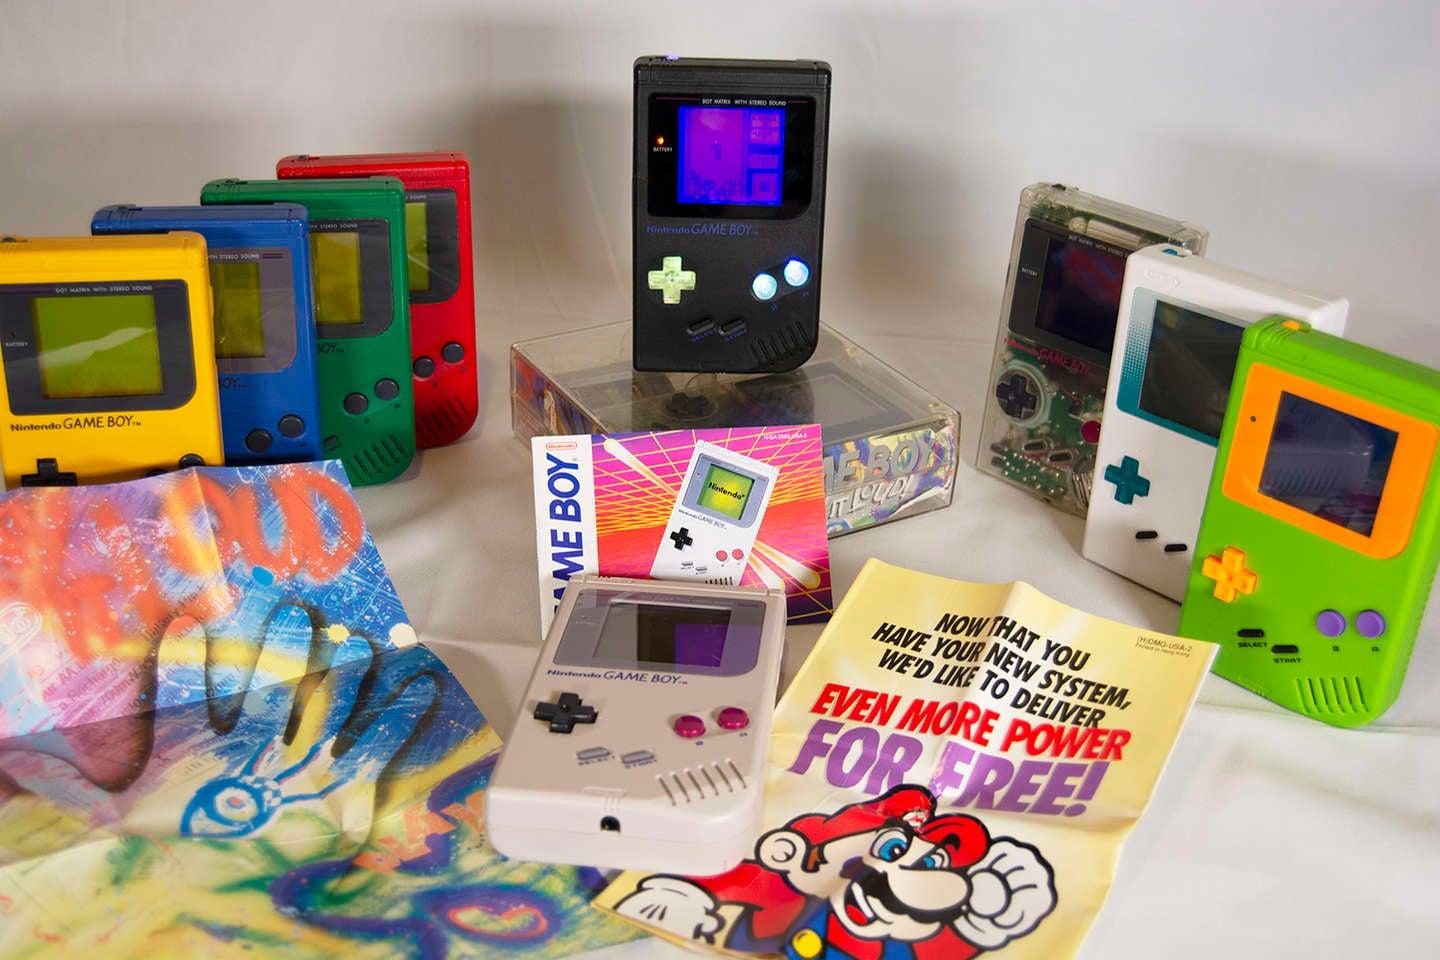 Game Boy collection